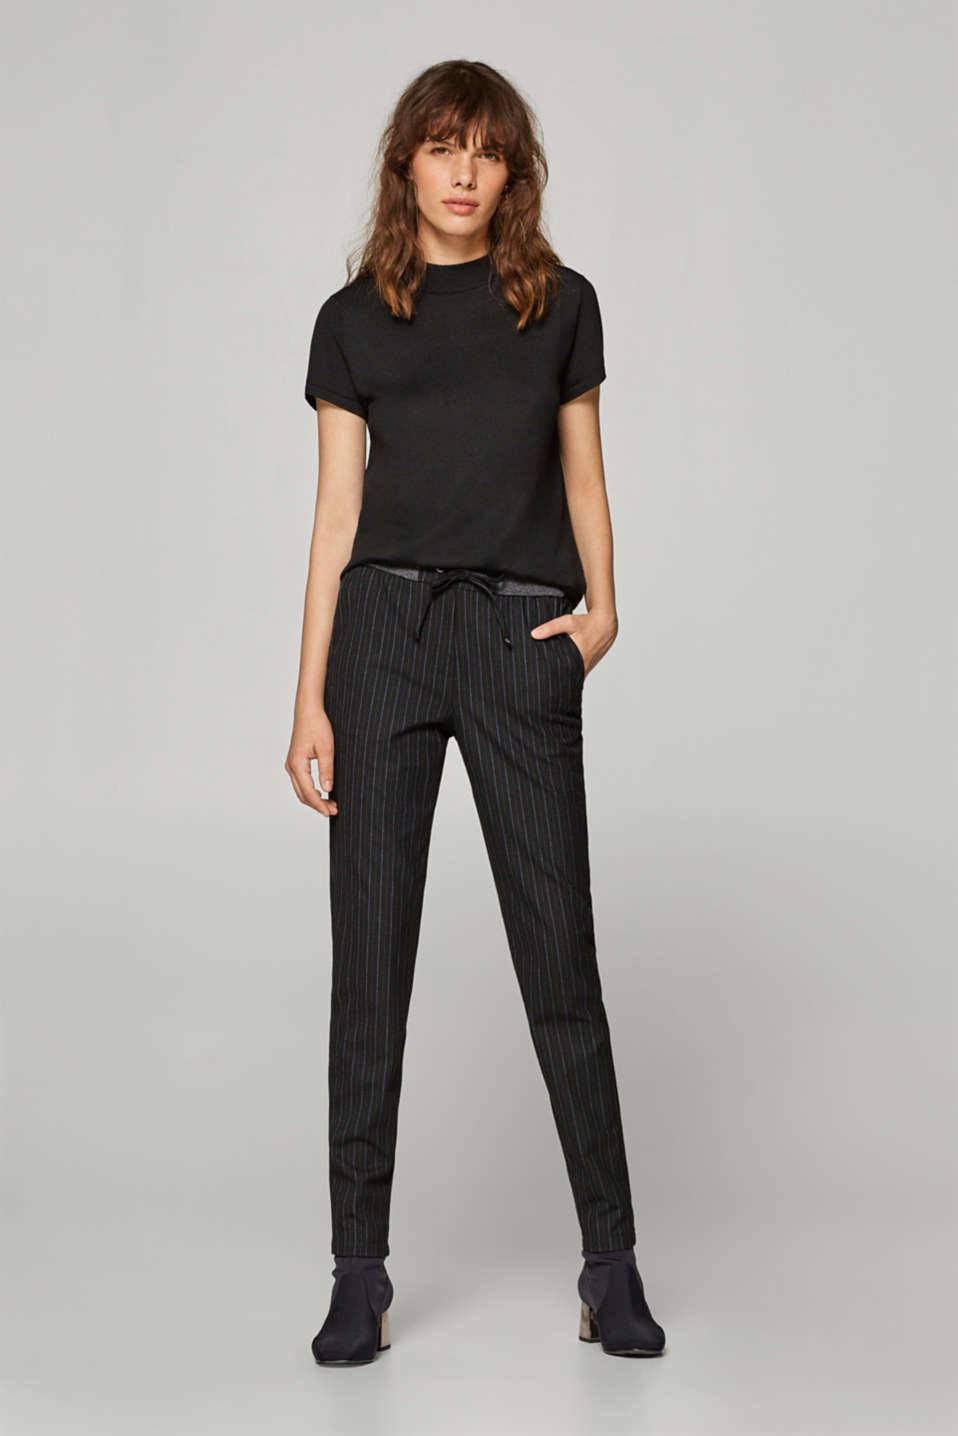 Esprit - Striped, woven trousers in a tracksuit bottom style